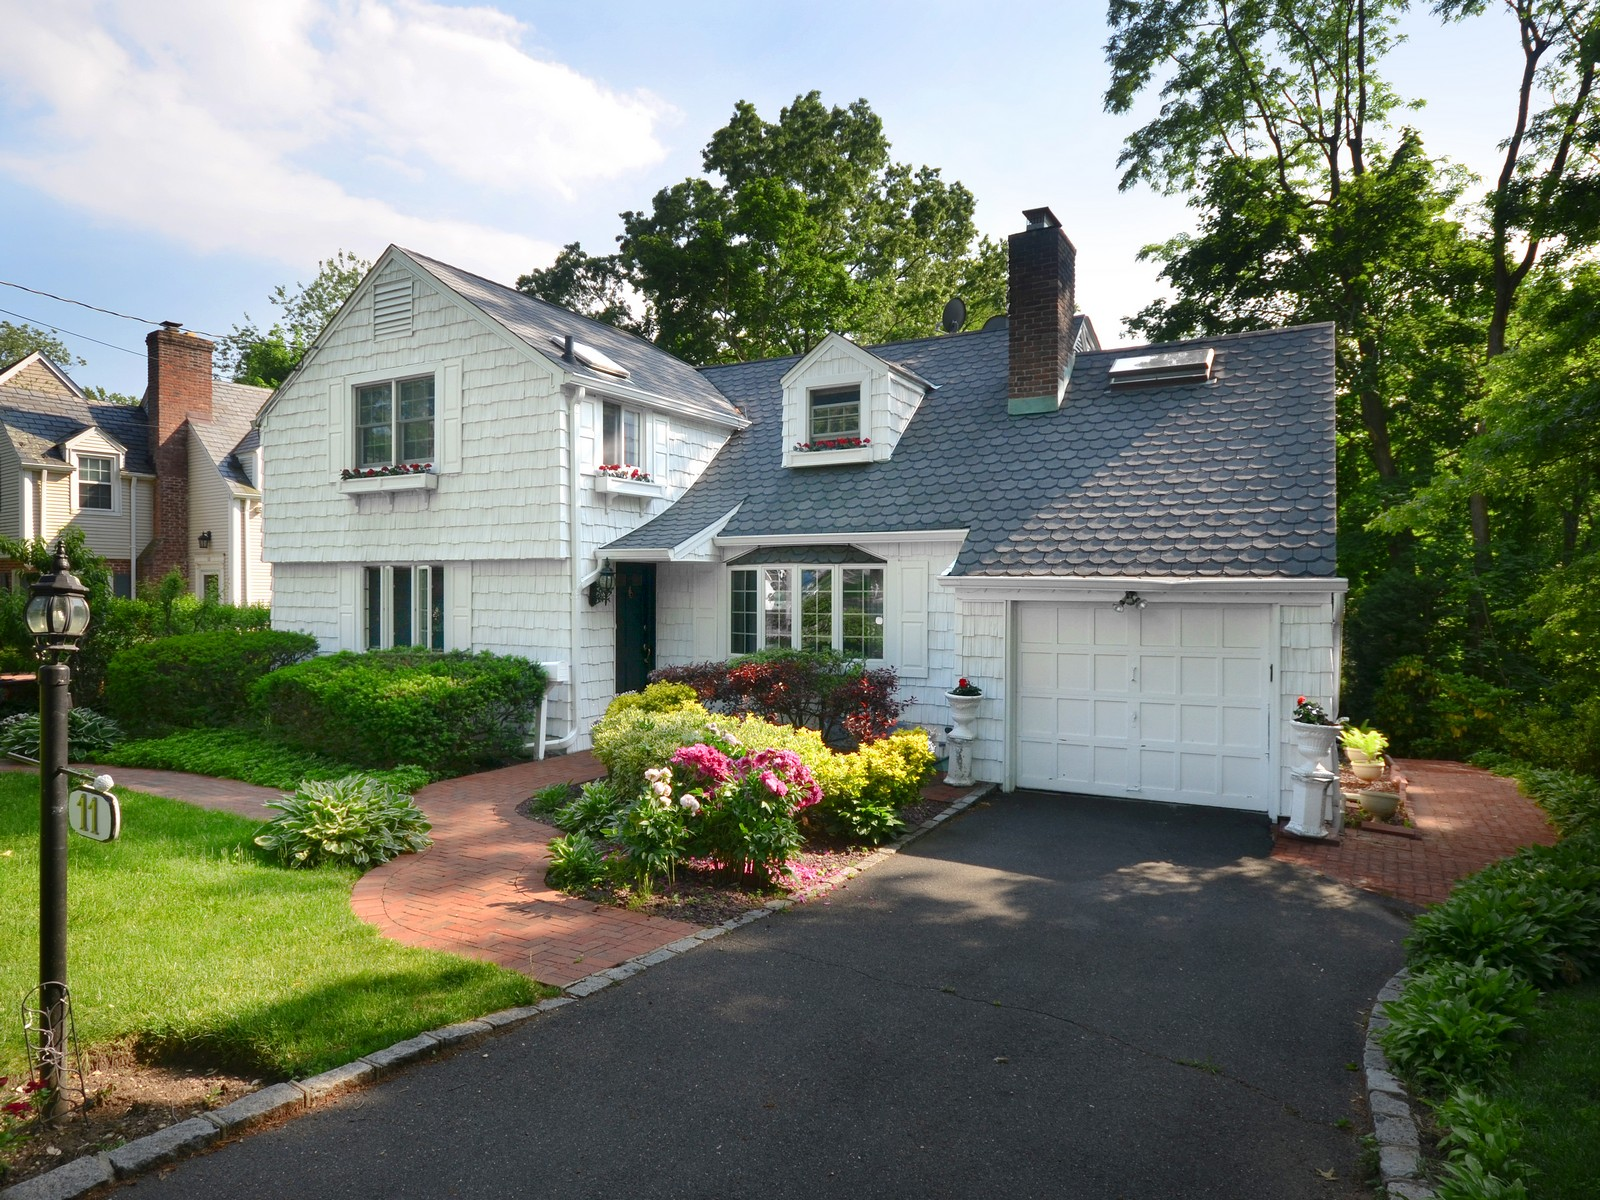 Single Family Home for Sale at Colonial 11 Briarcliff Dr Port Washington, New York, 11050 United States